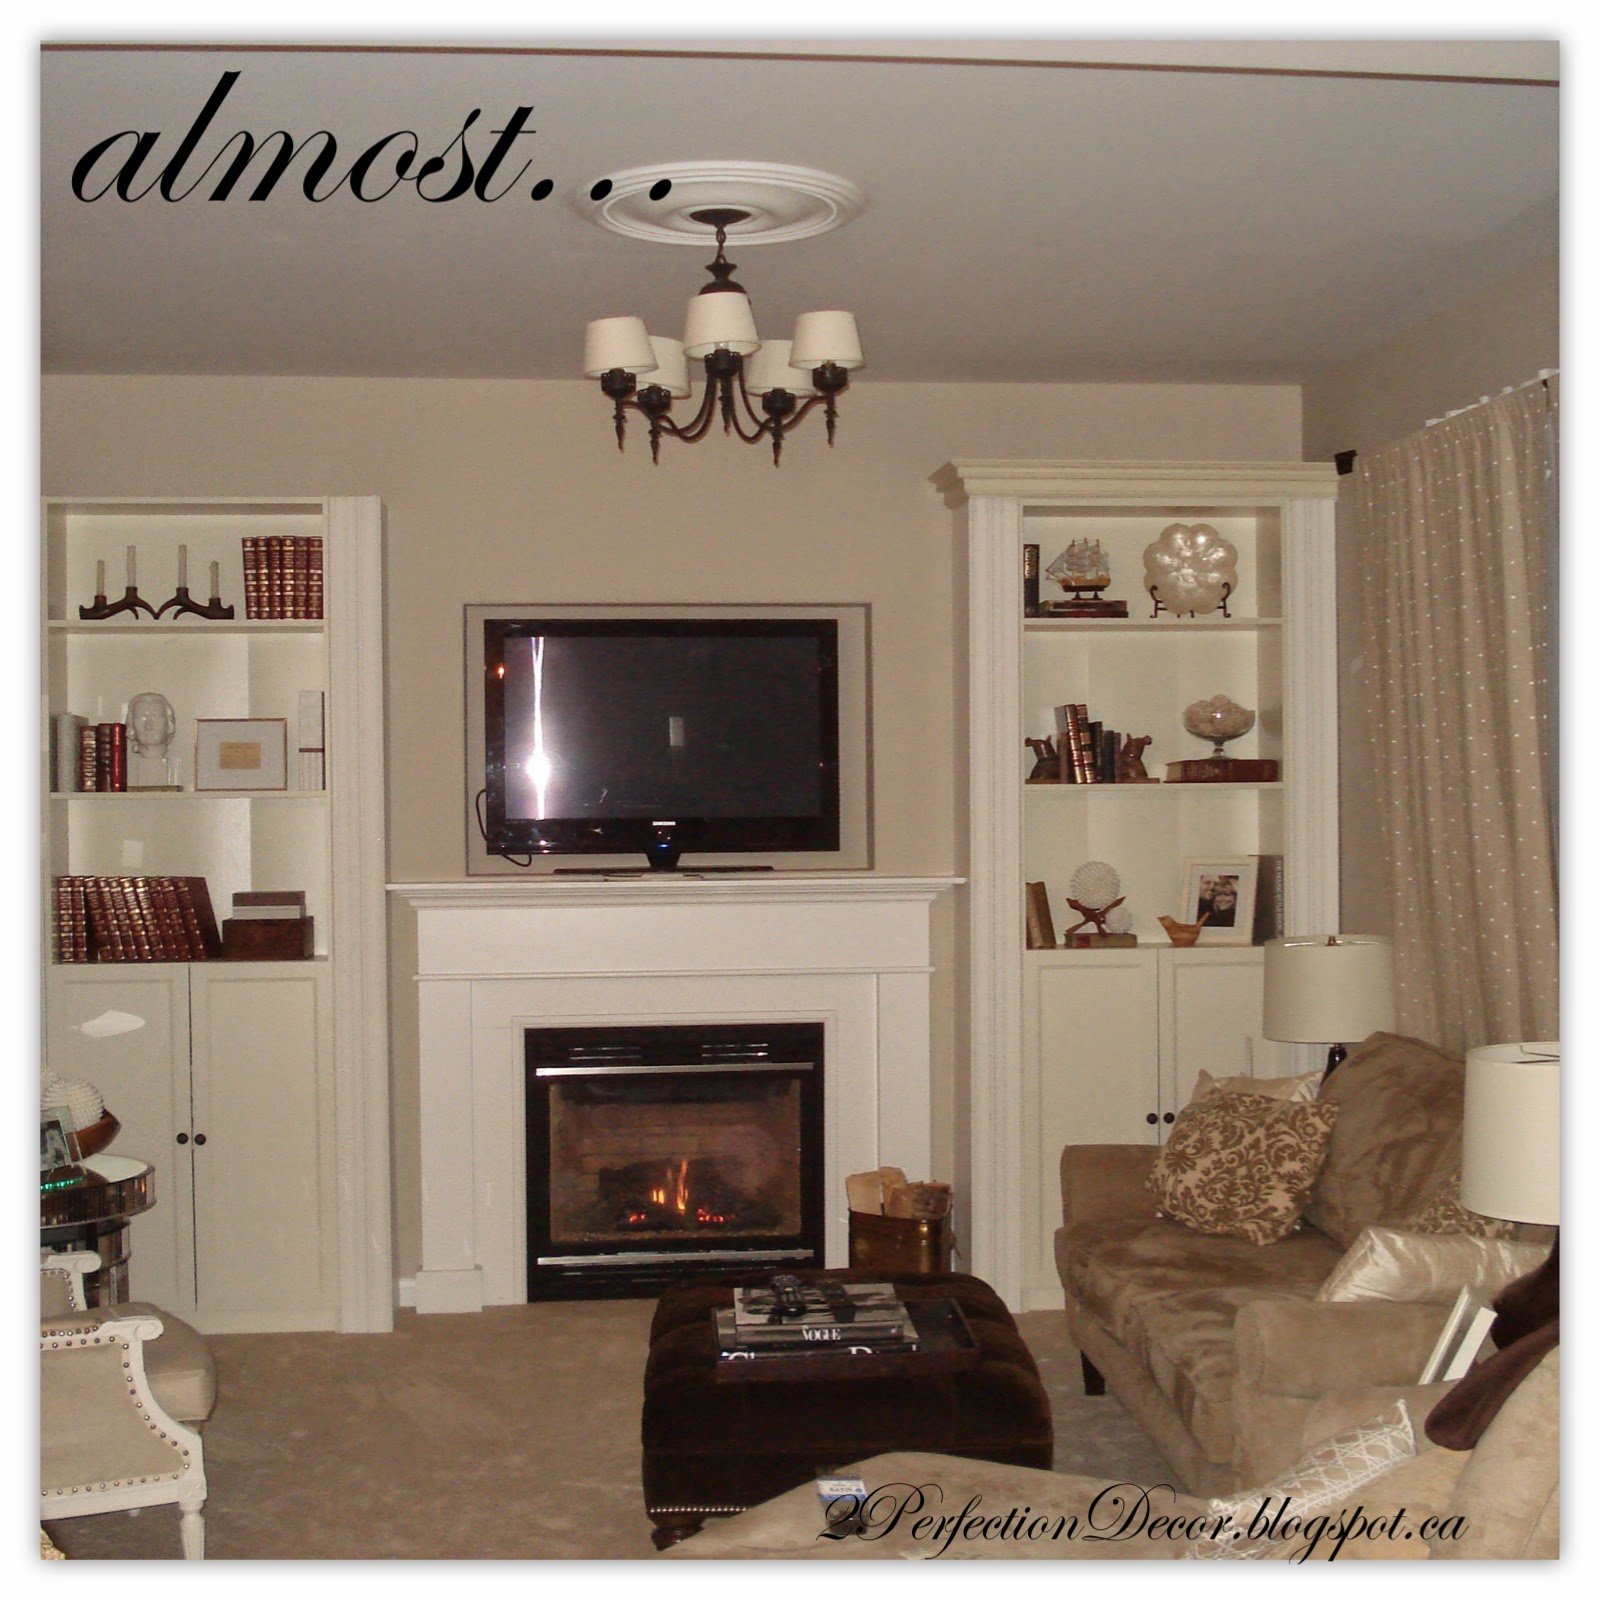 2Perfection Decor: Built-in Bookshelves to flank fireplace